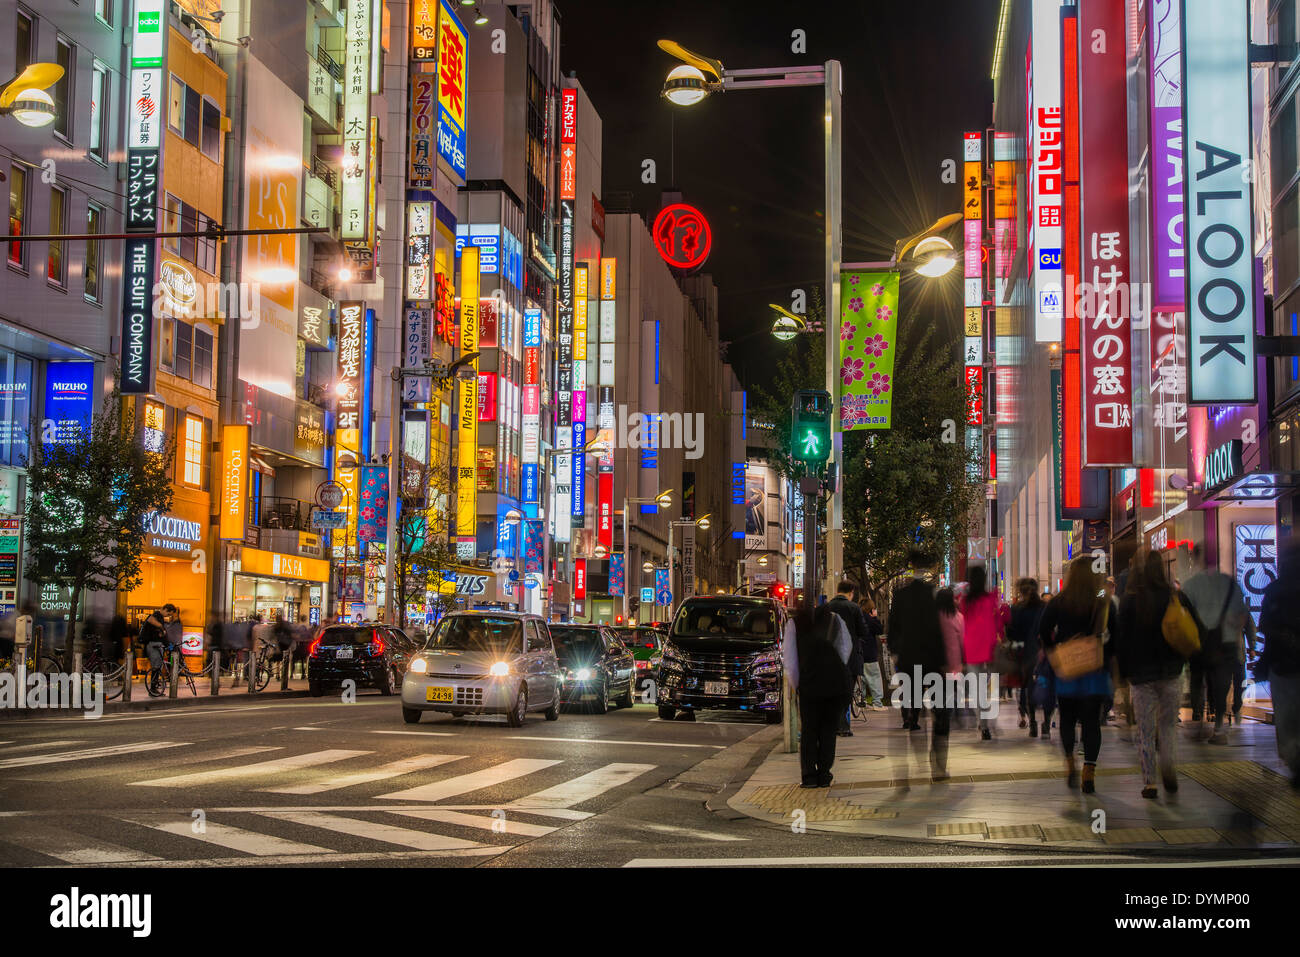 Neon lights at night in a street of Shinjuku district, Tokyo, Japan - Stock Image